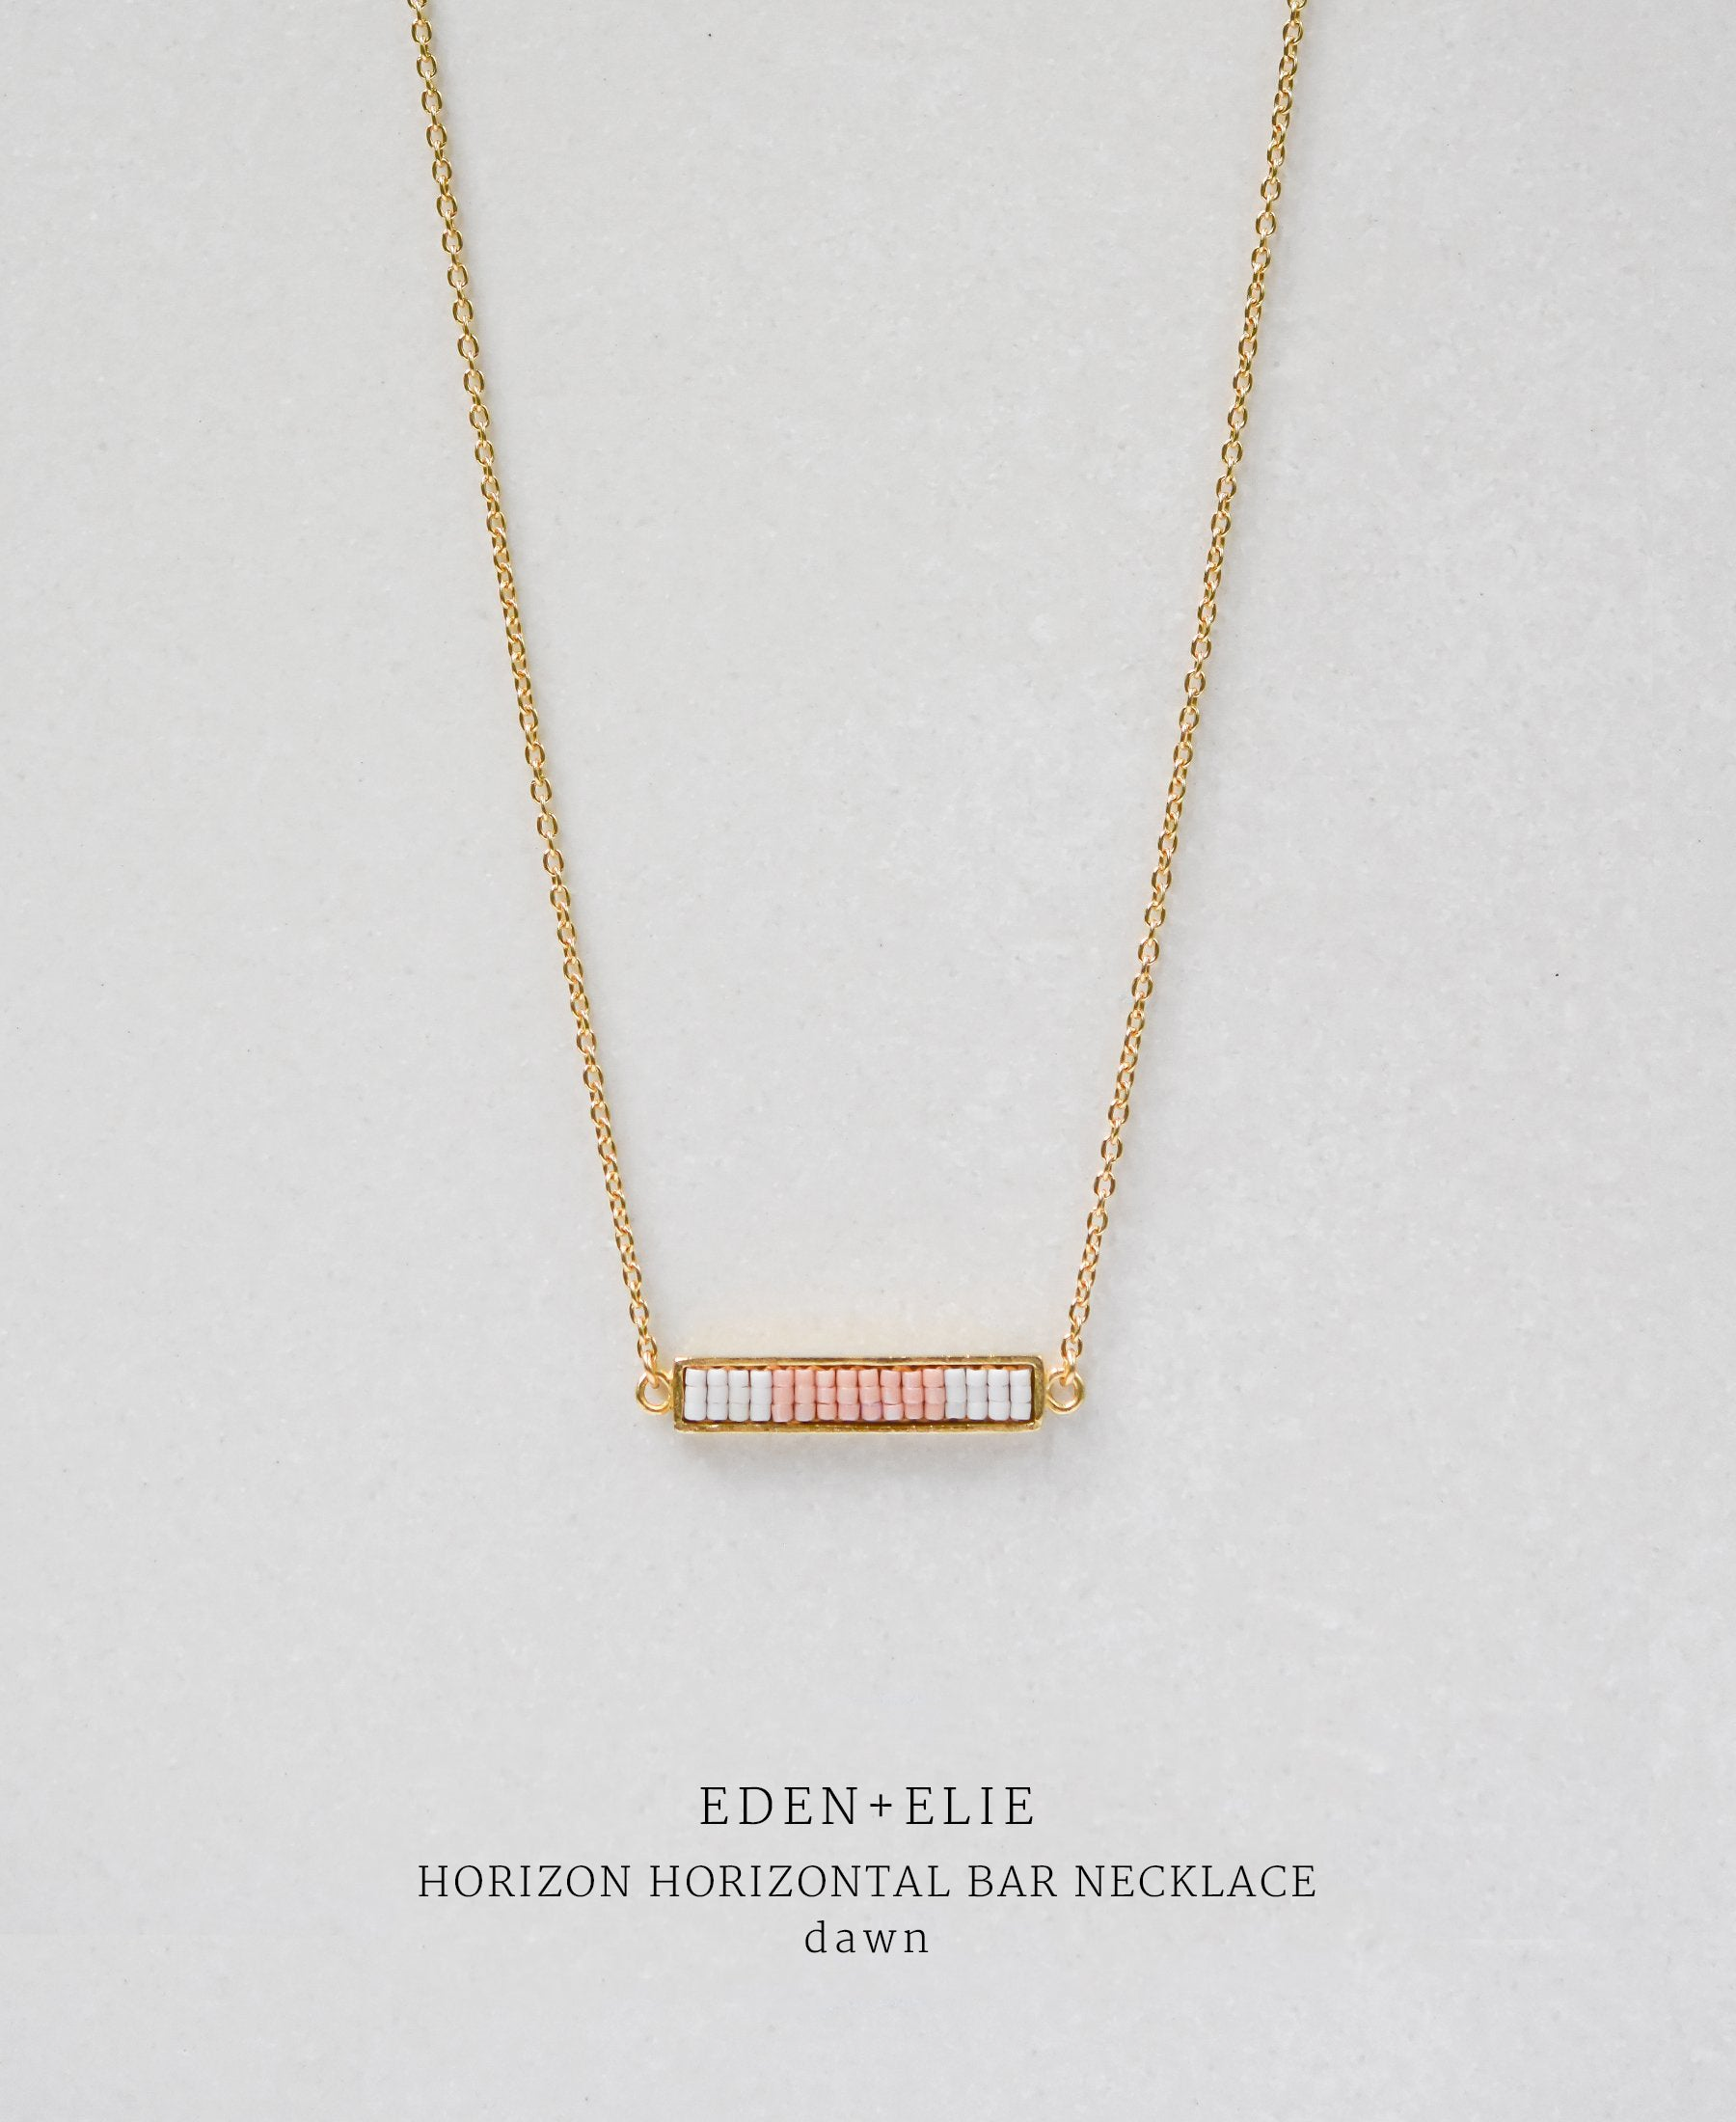 EDEN + ELIE Horizon Horizontal bar necklace - dawn pink